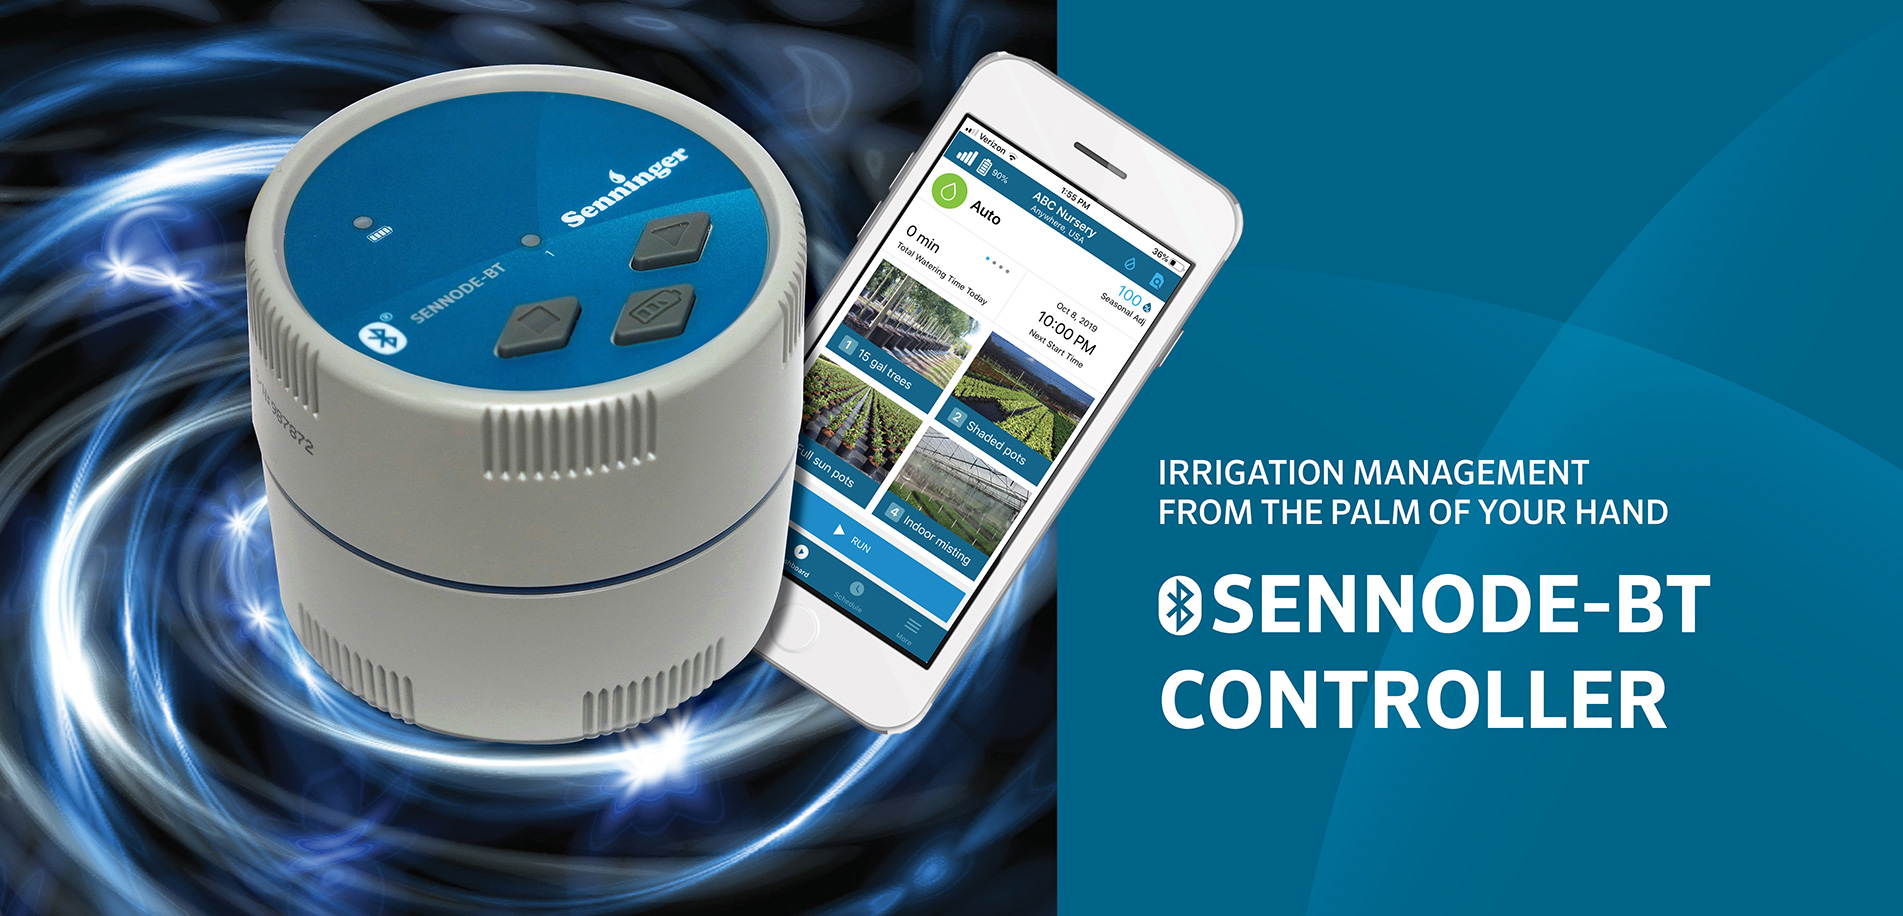 Irrigation Management from the Palm of Your Hand. SENNODE-BT Controller